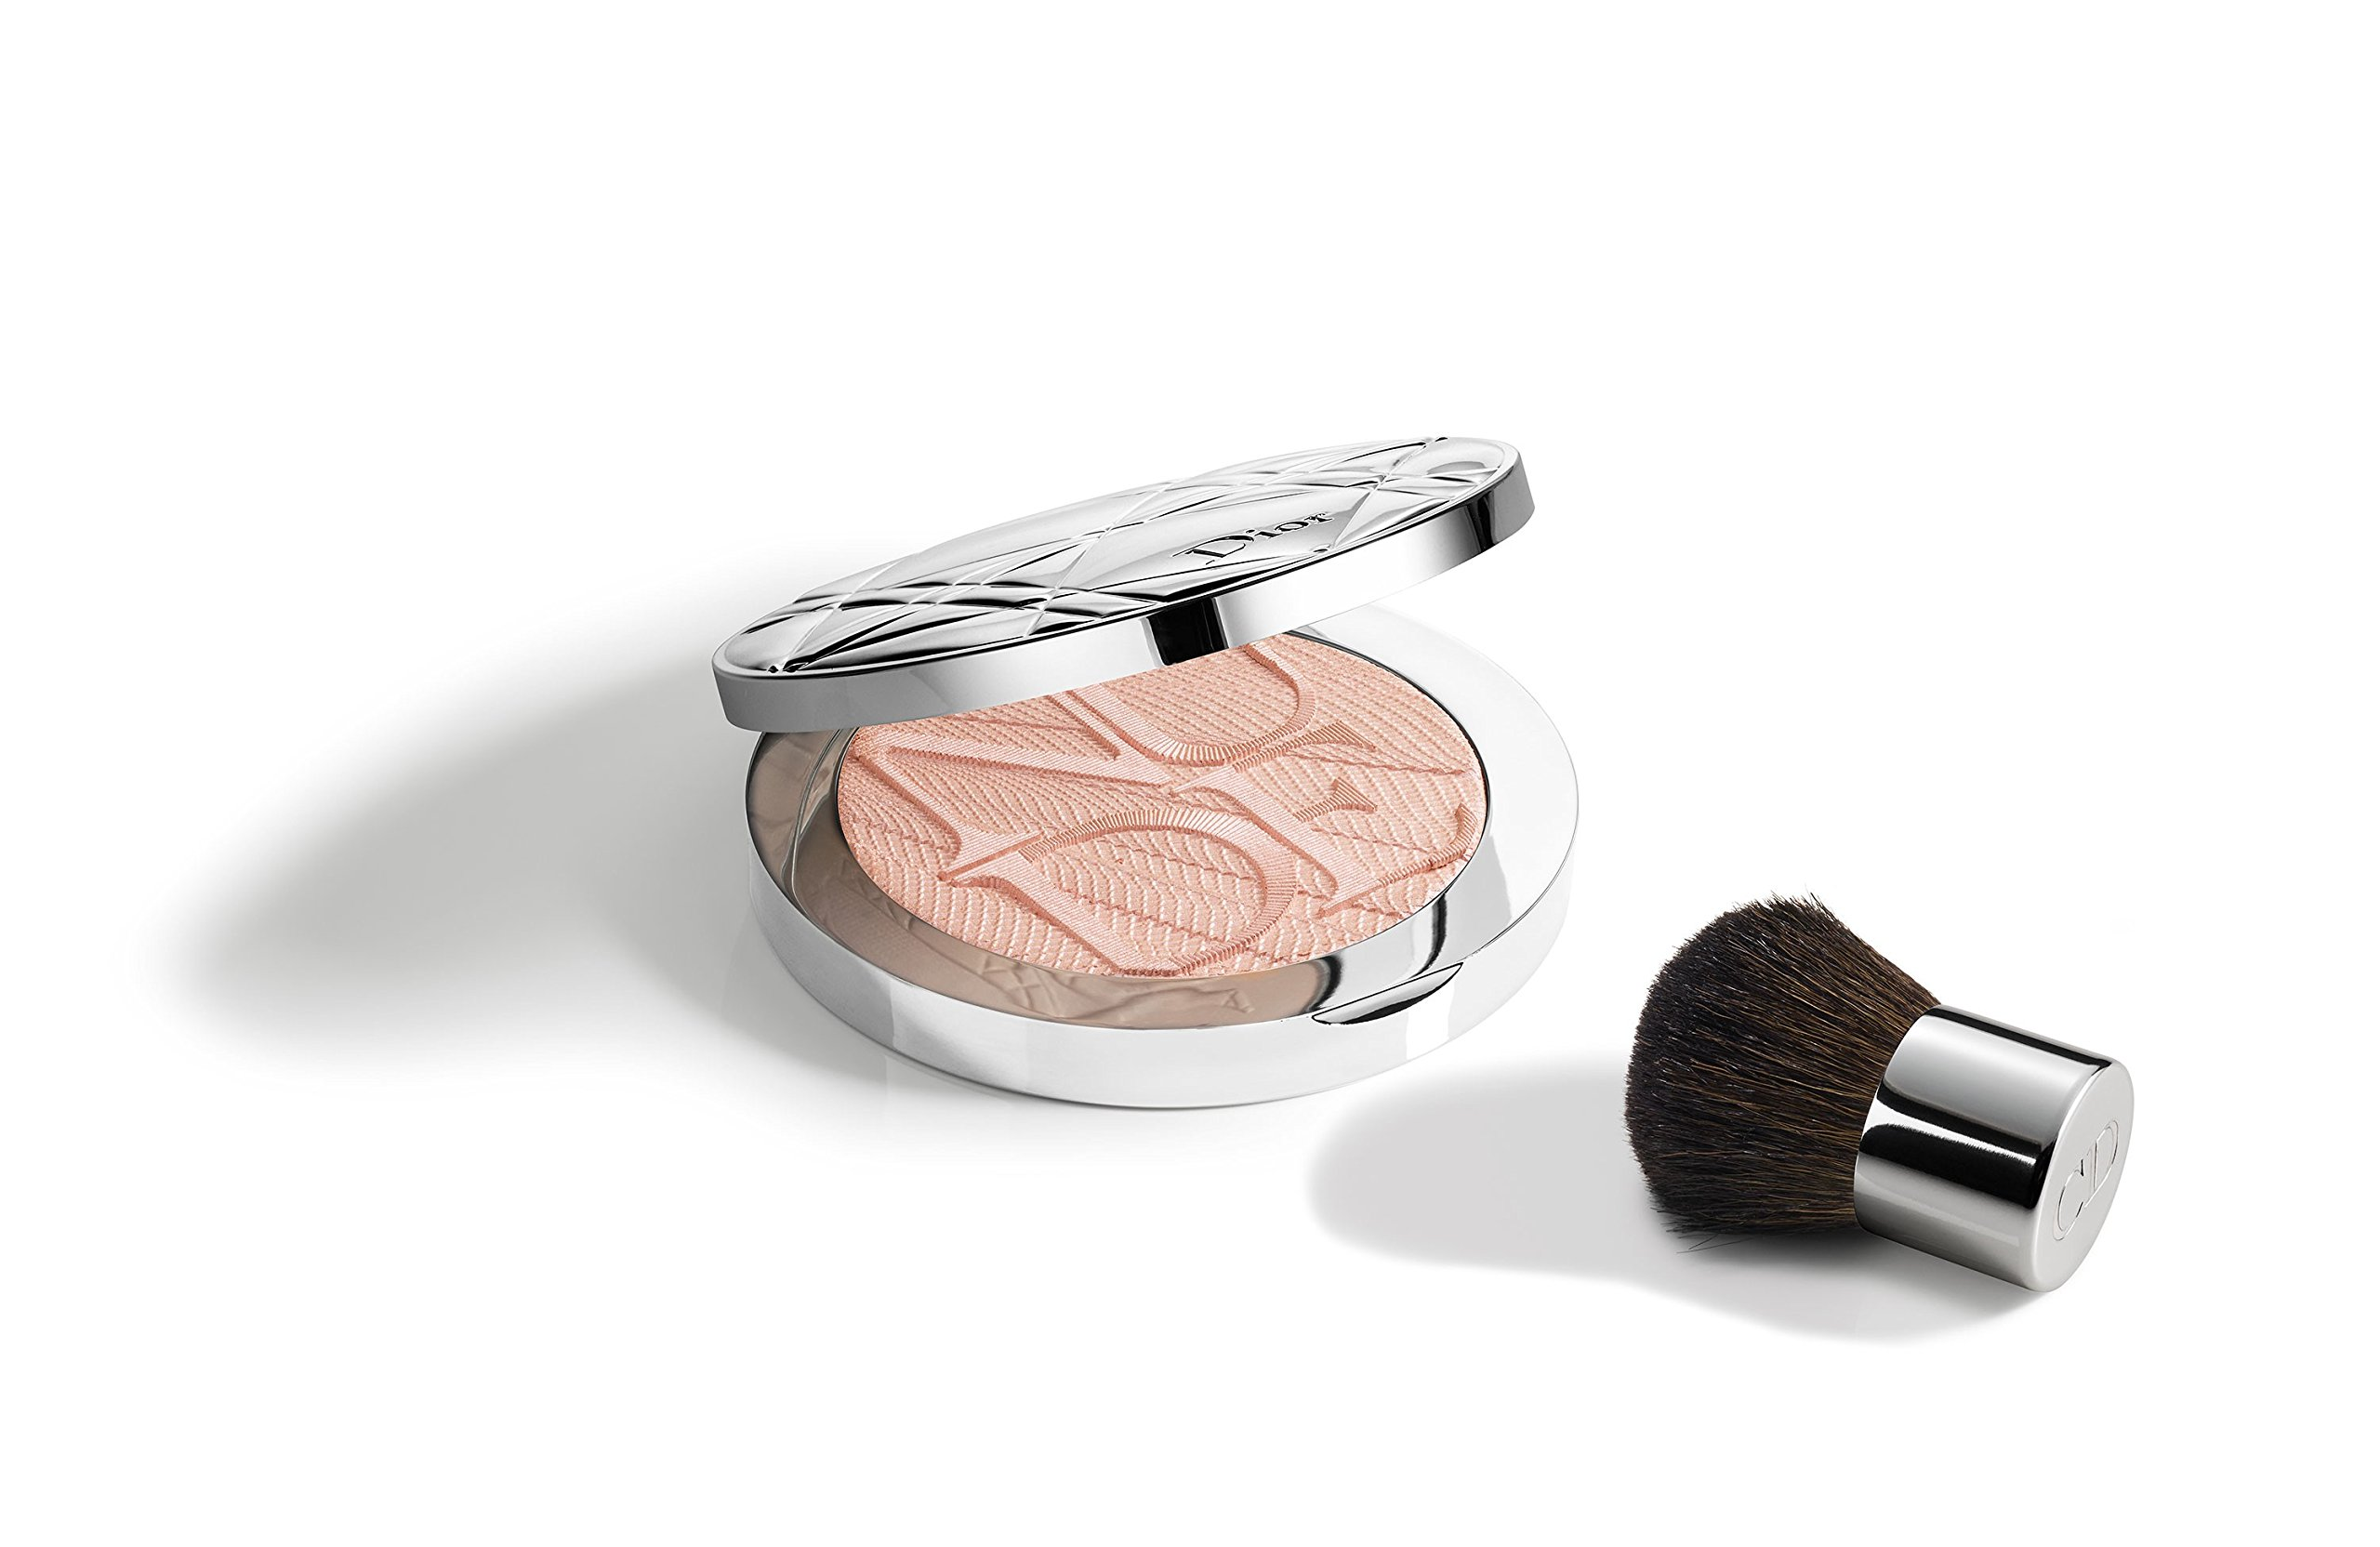 DIORSKIN NUDE AIR LUMINIZER : GLOW ADDICT EDITION - SPRING LOOK 2018 LIMITED EDITION # 001 HOLO PINK by Dior (Image #1)